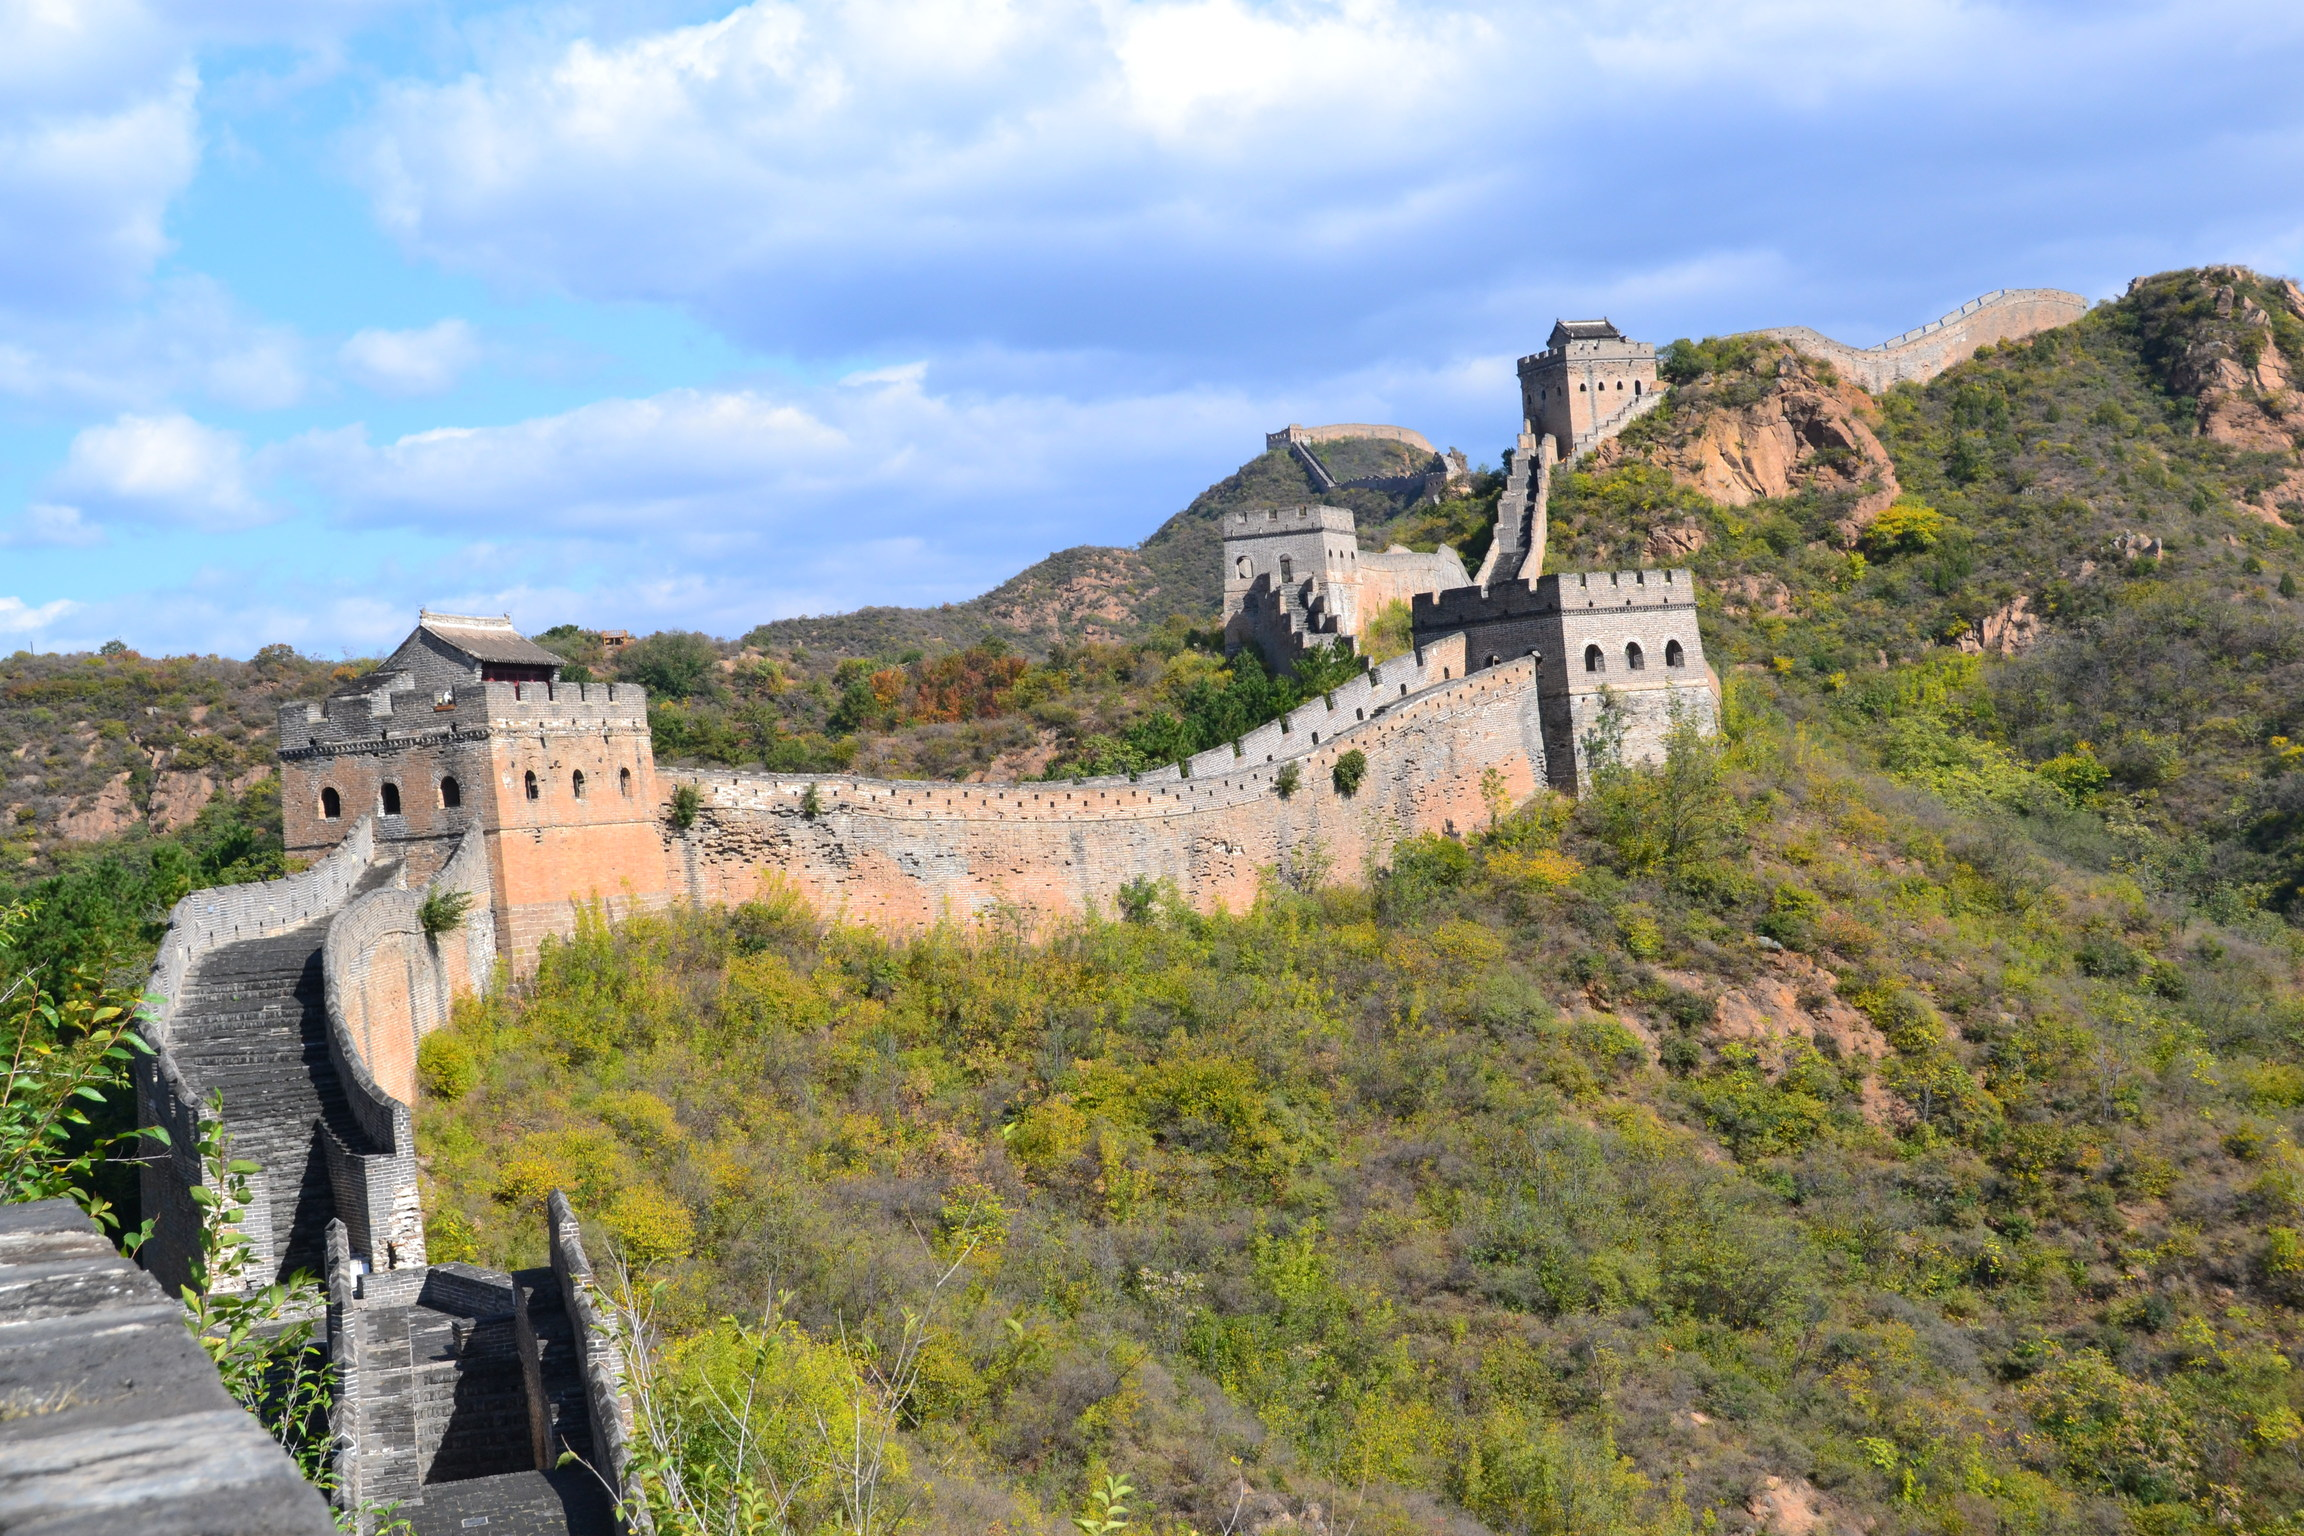 Great Wall of China Trek takes place 16 Oct - 24 Oct 2020